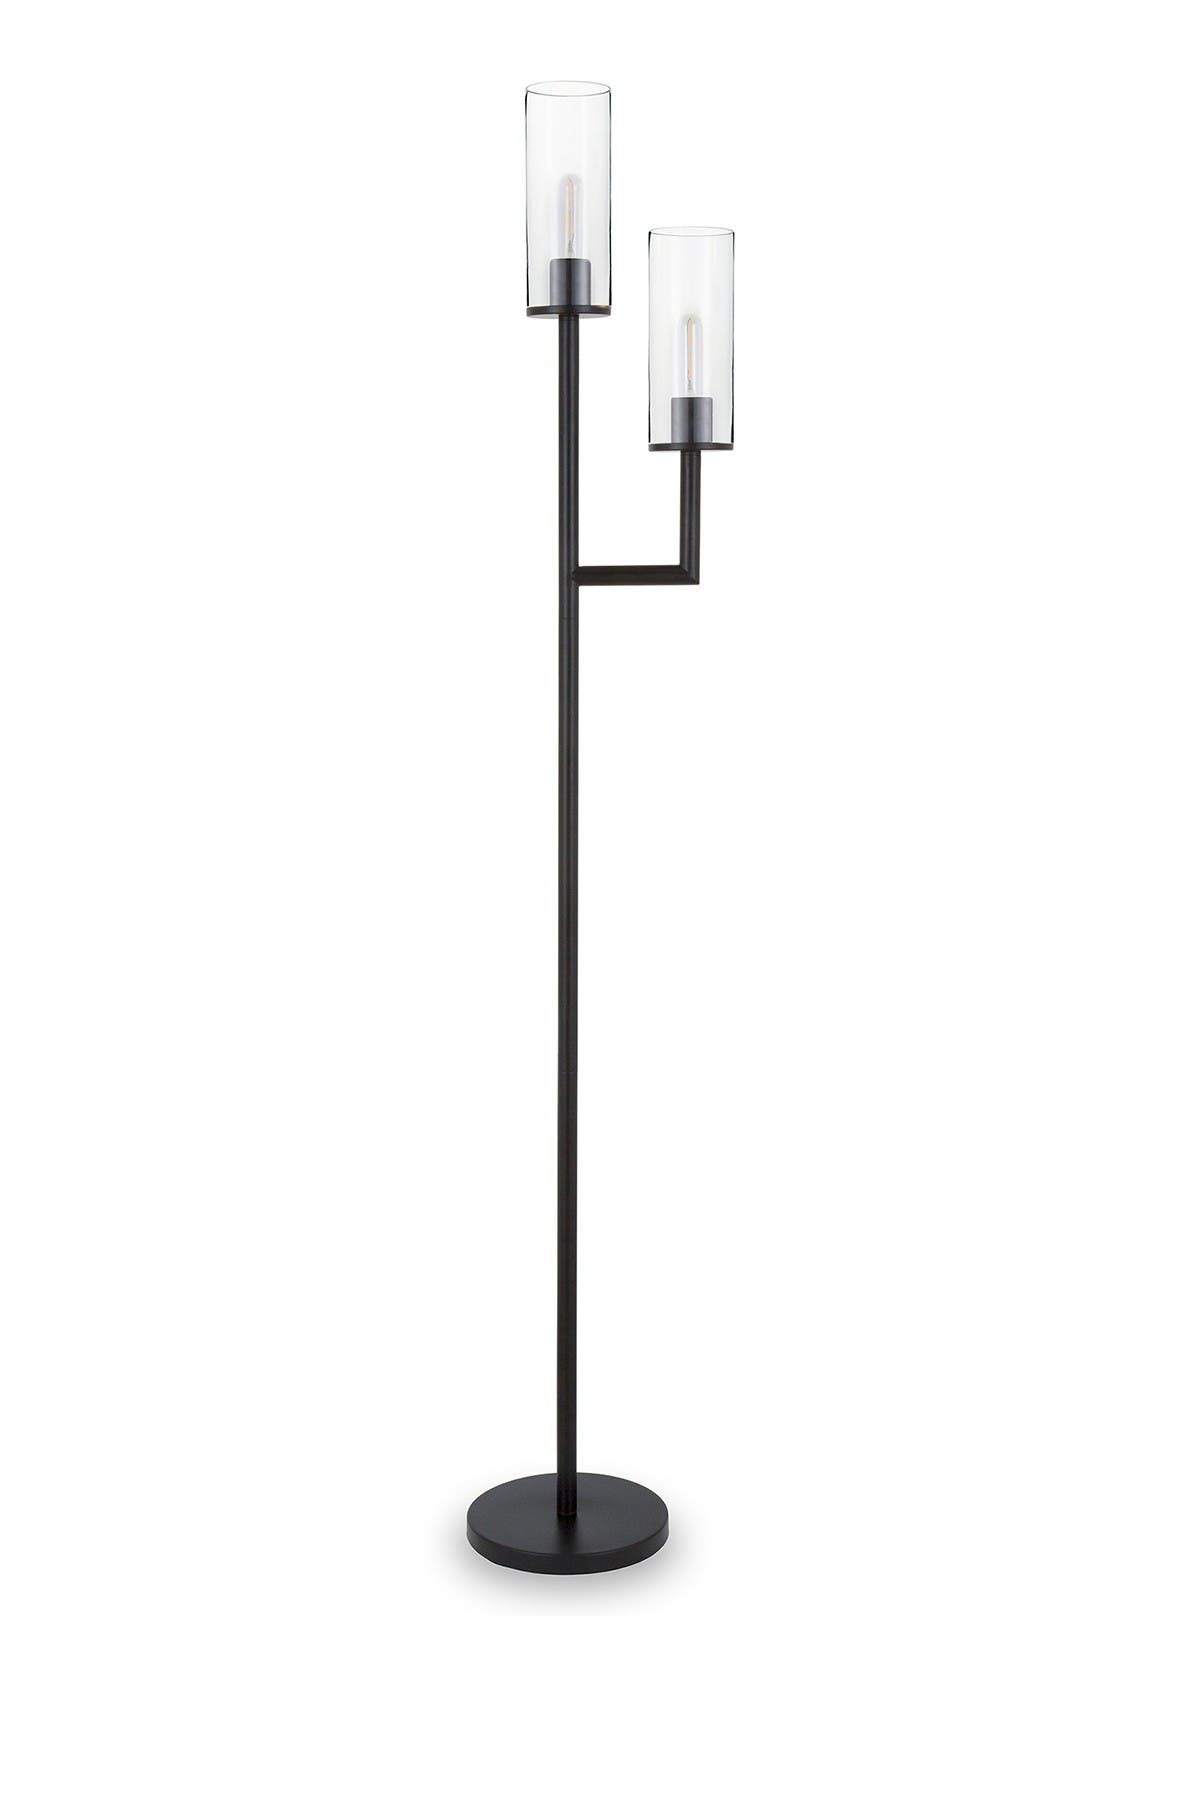 Image of Addison and Lane Basso Floor Lamp with Double Torchiere